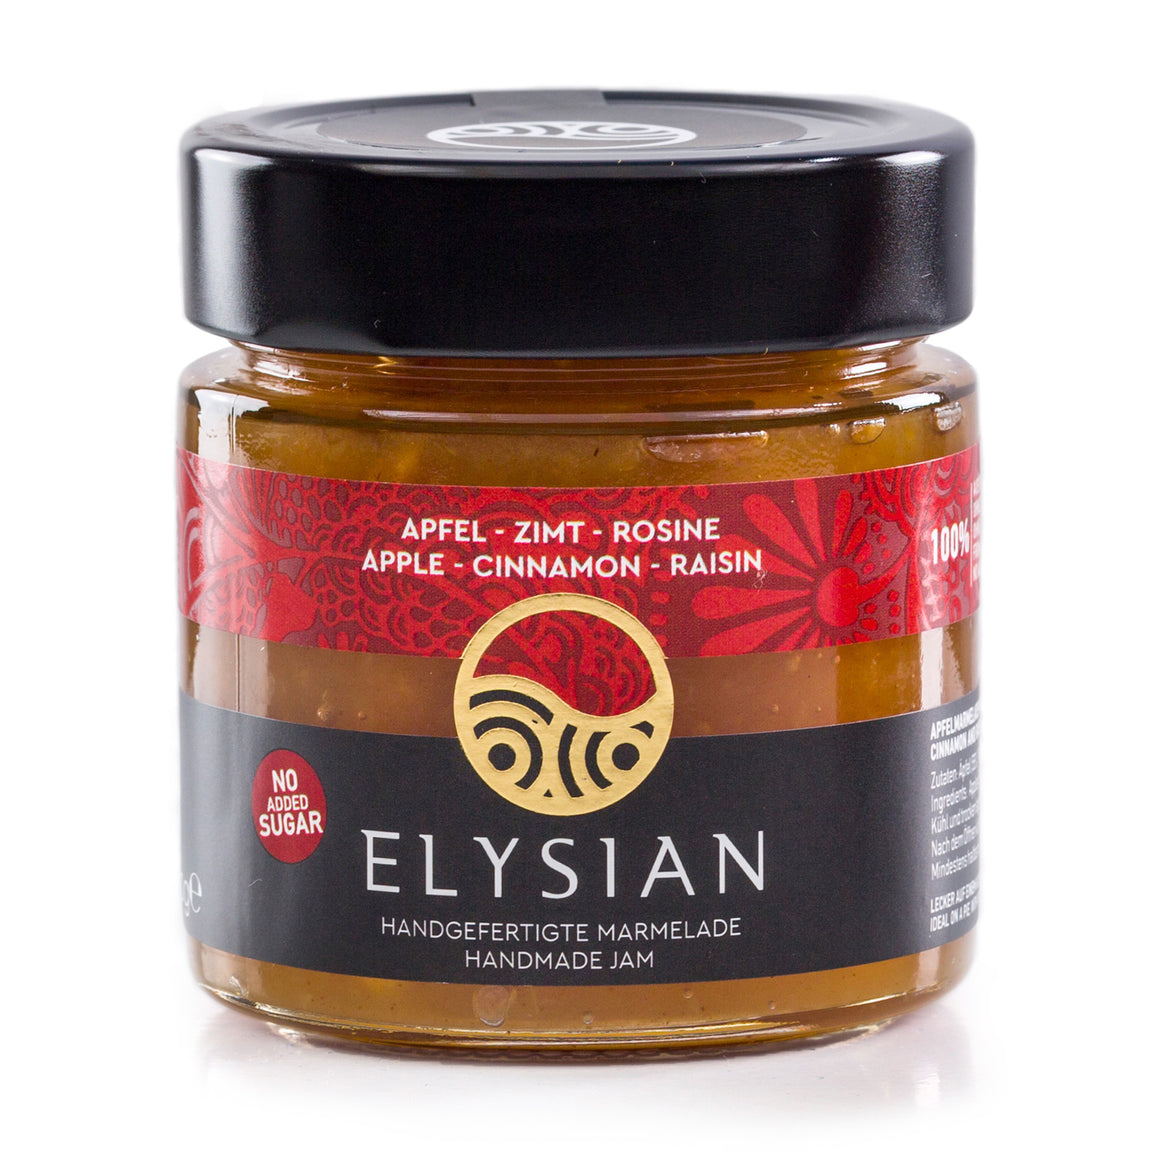 'Elysian' Apple, Cinnamon & Raisin Jam -300g